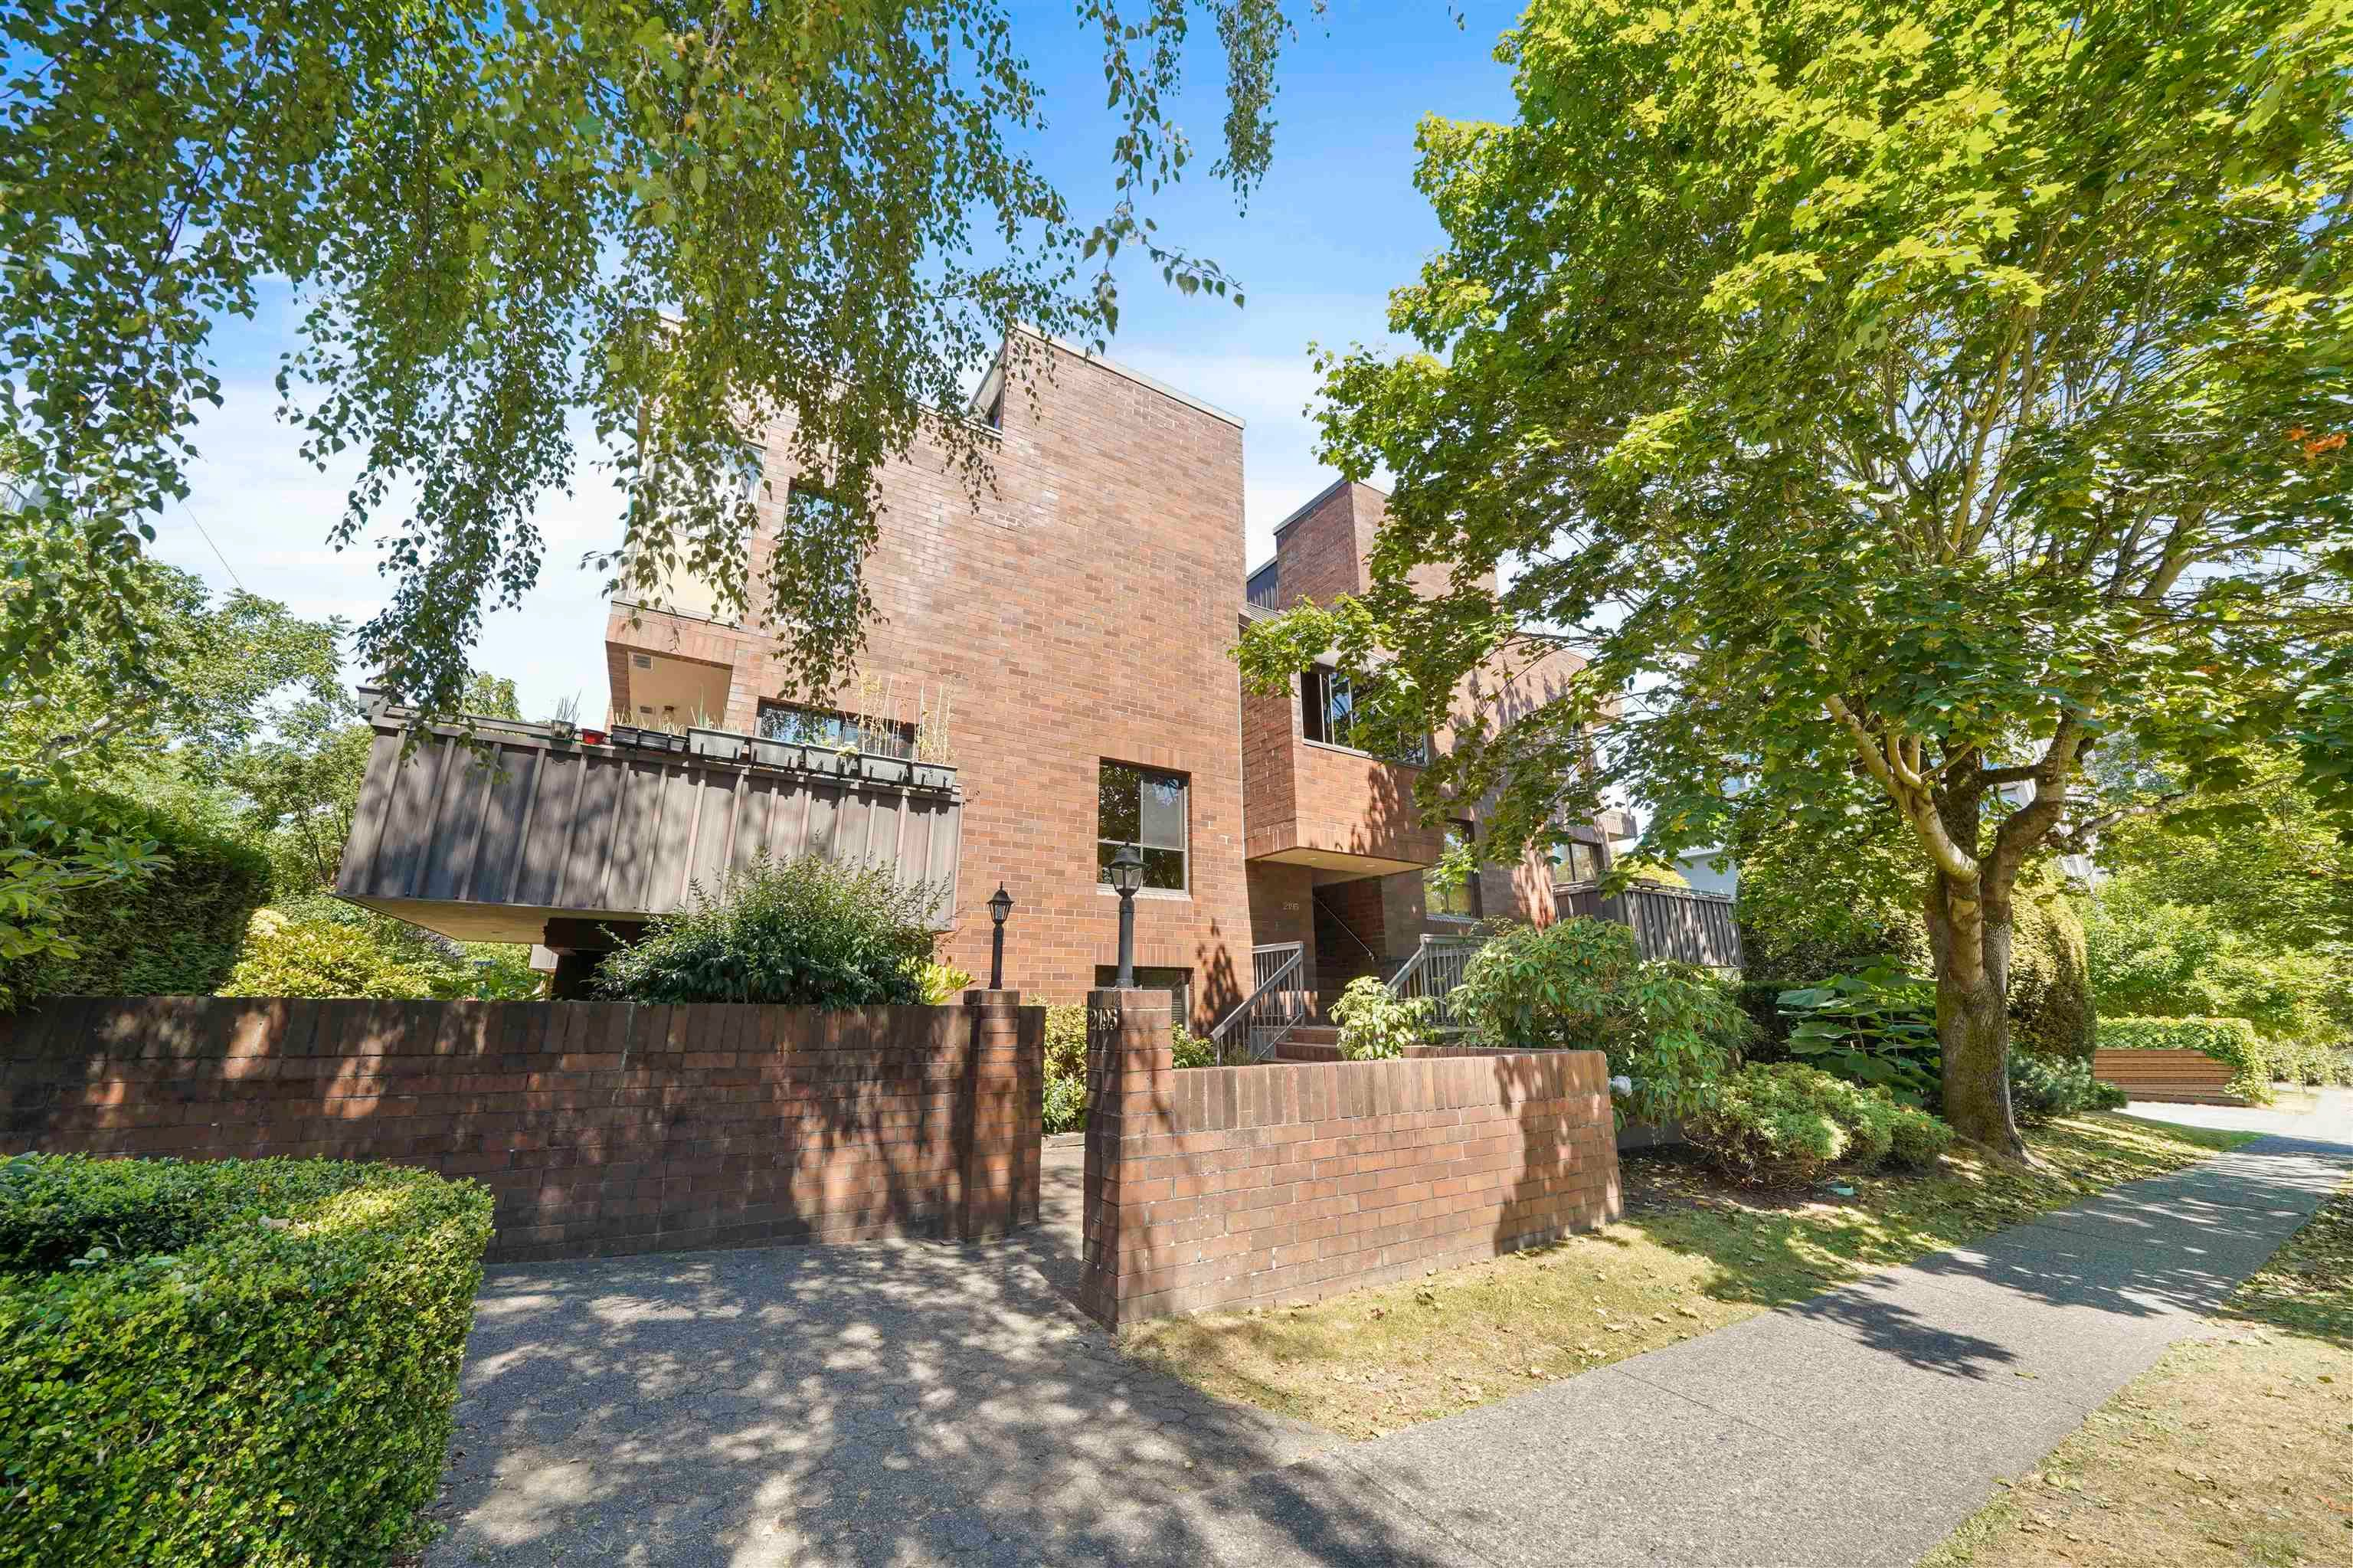 """Main Photo: 204 2195 W 40TH Avenue in Vancouver: Kerrisdale Townhouse for sale in """"THE DIPLOMAT IN KERRISDALE"""" (Vancouver West)  : MLS®# R2618112"""